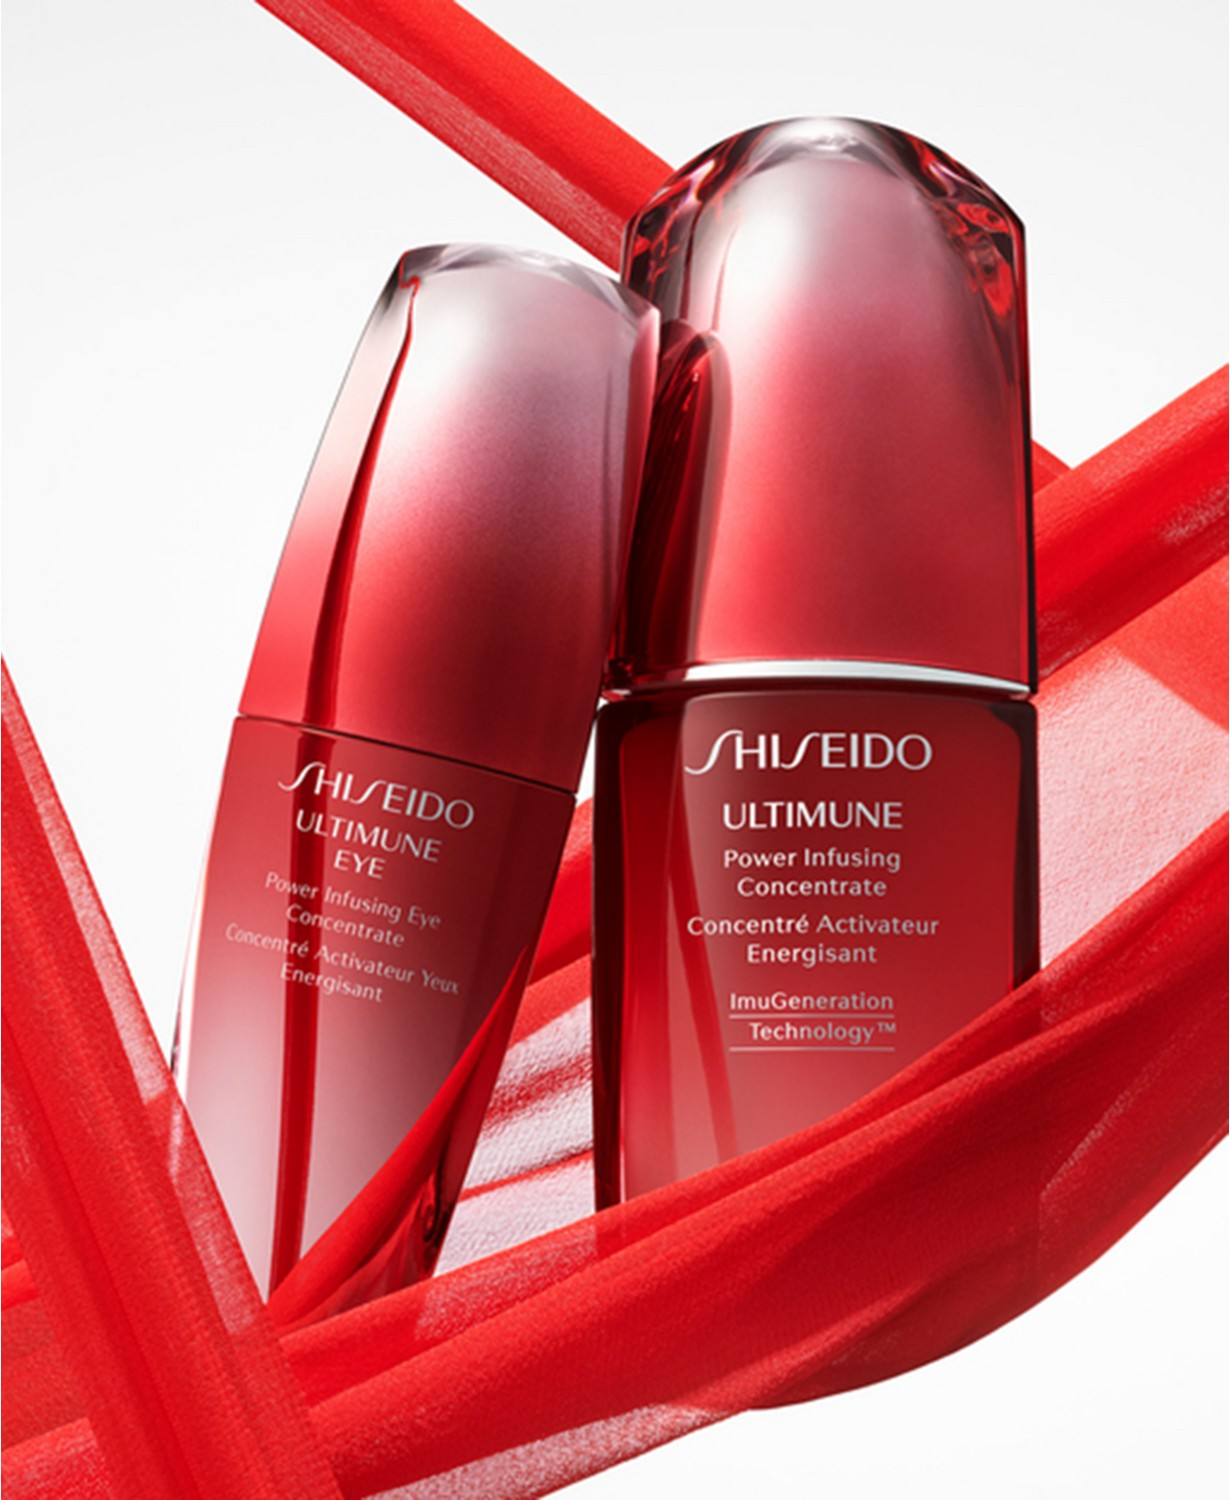 MACYS LIMITED TIME POP UP SALE! SHISEIDO TOP SELLER 30% OFF!